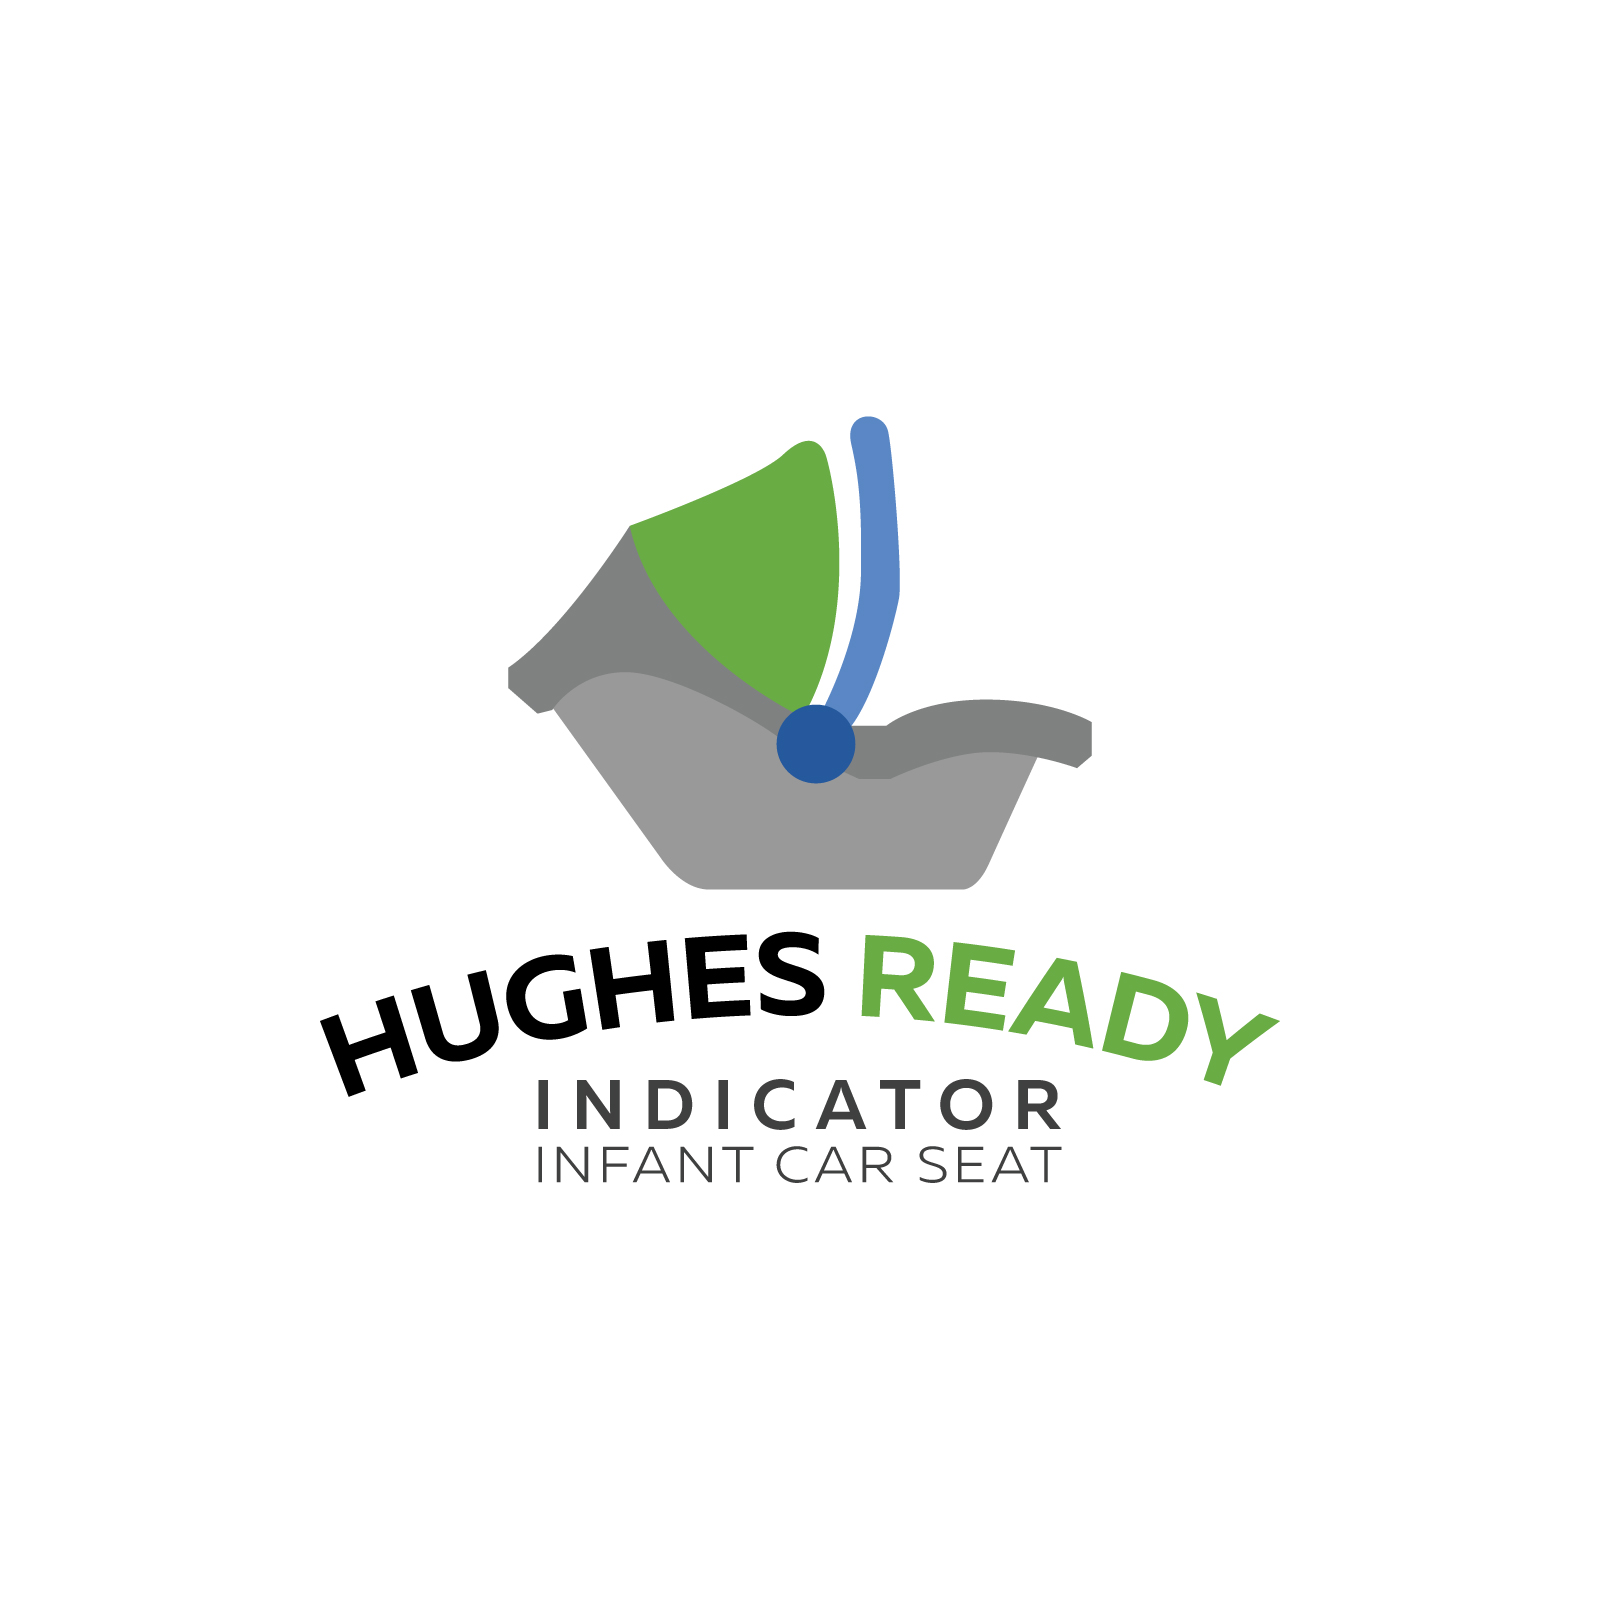 Hughes Ready Indicator Infant Car Seat